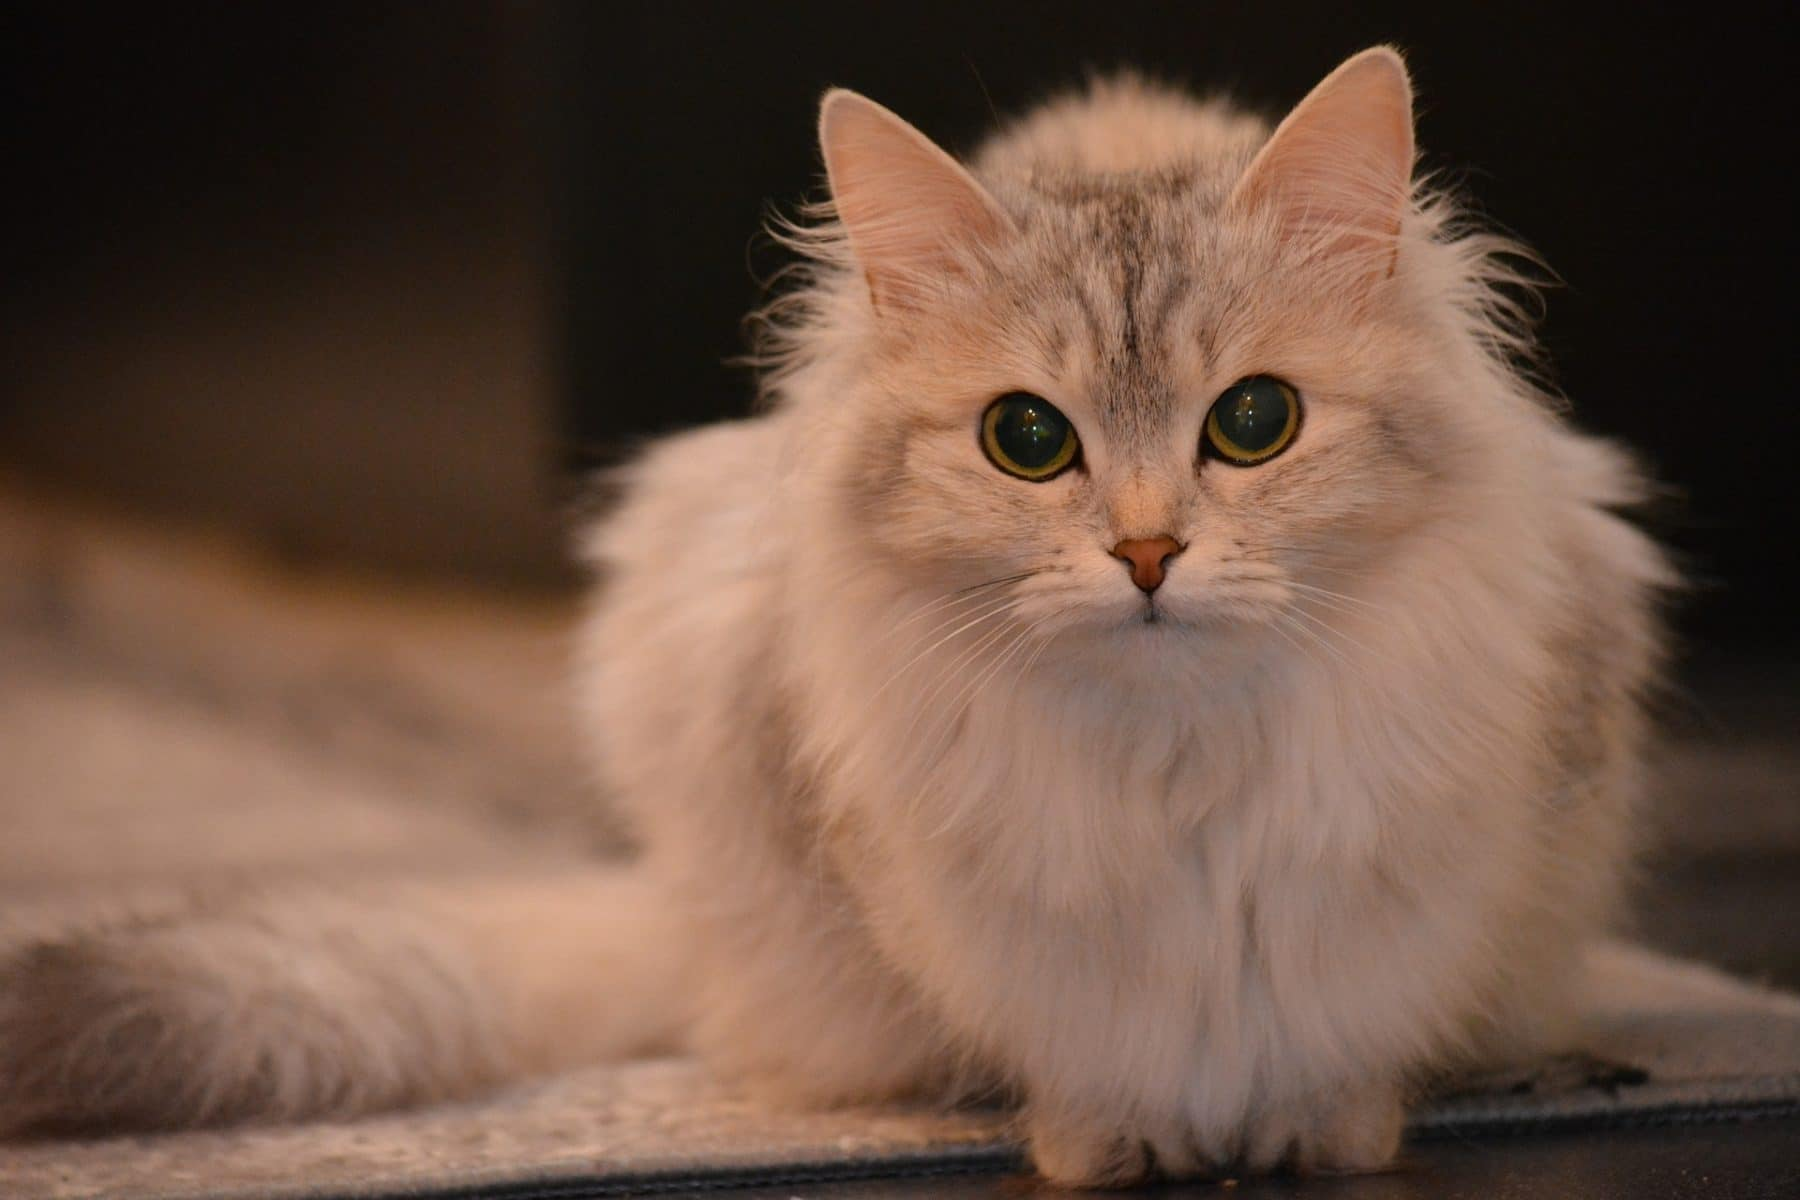 The Cutest Cat Breeds 14 Cats You Ll Definitely Want To Snuggle